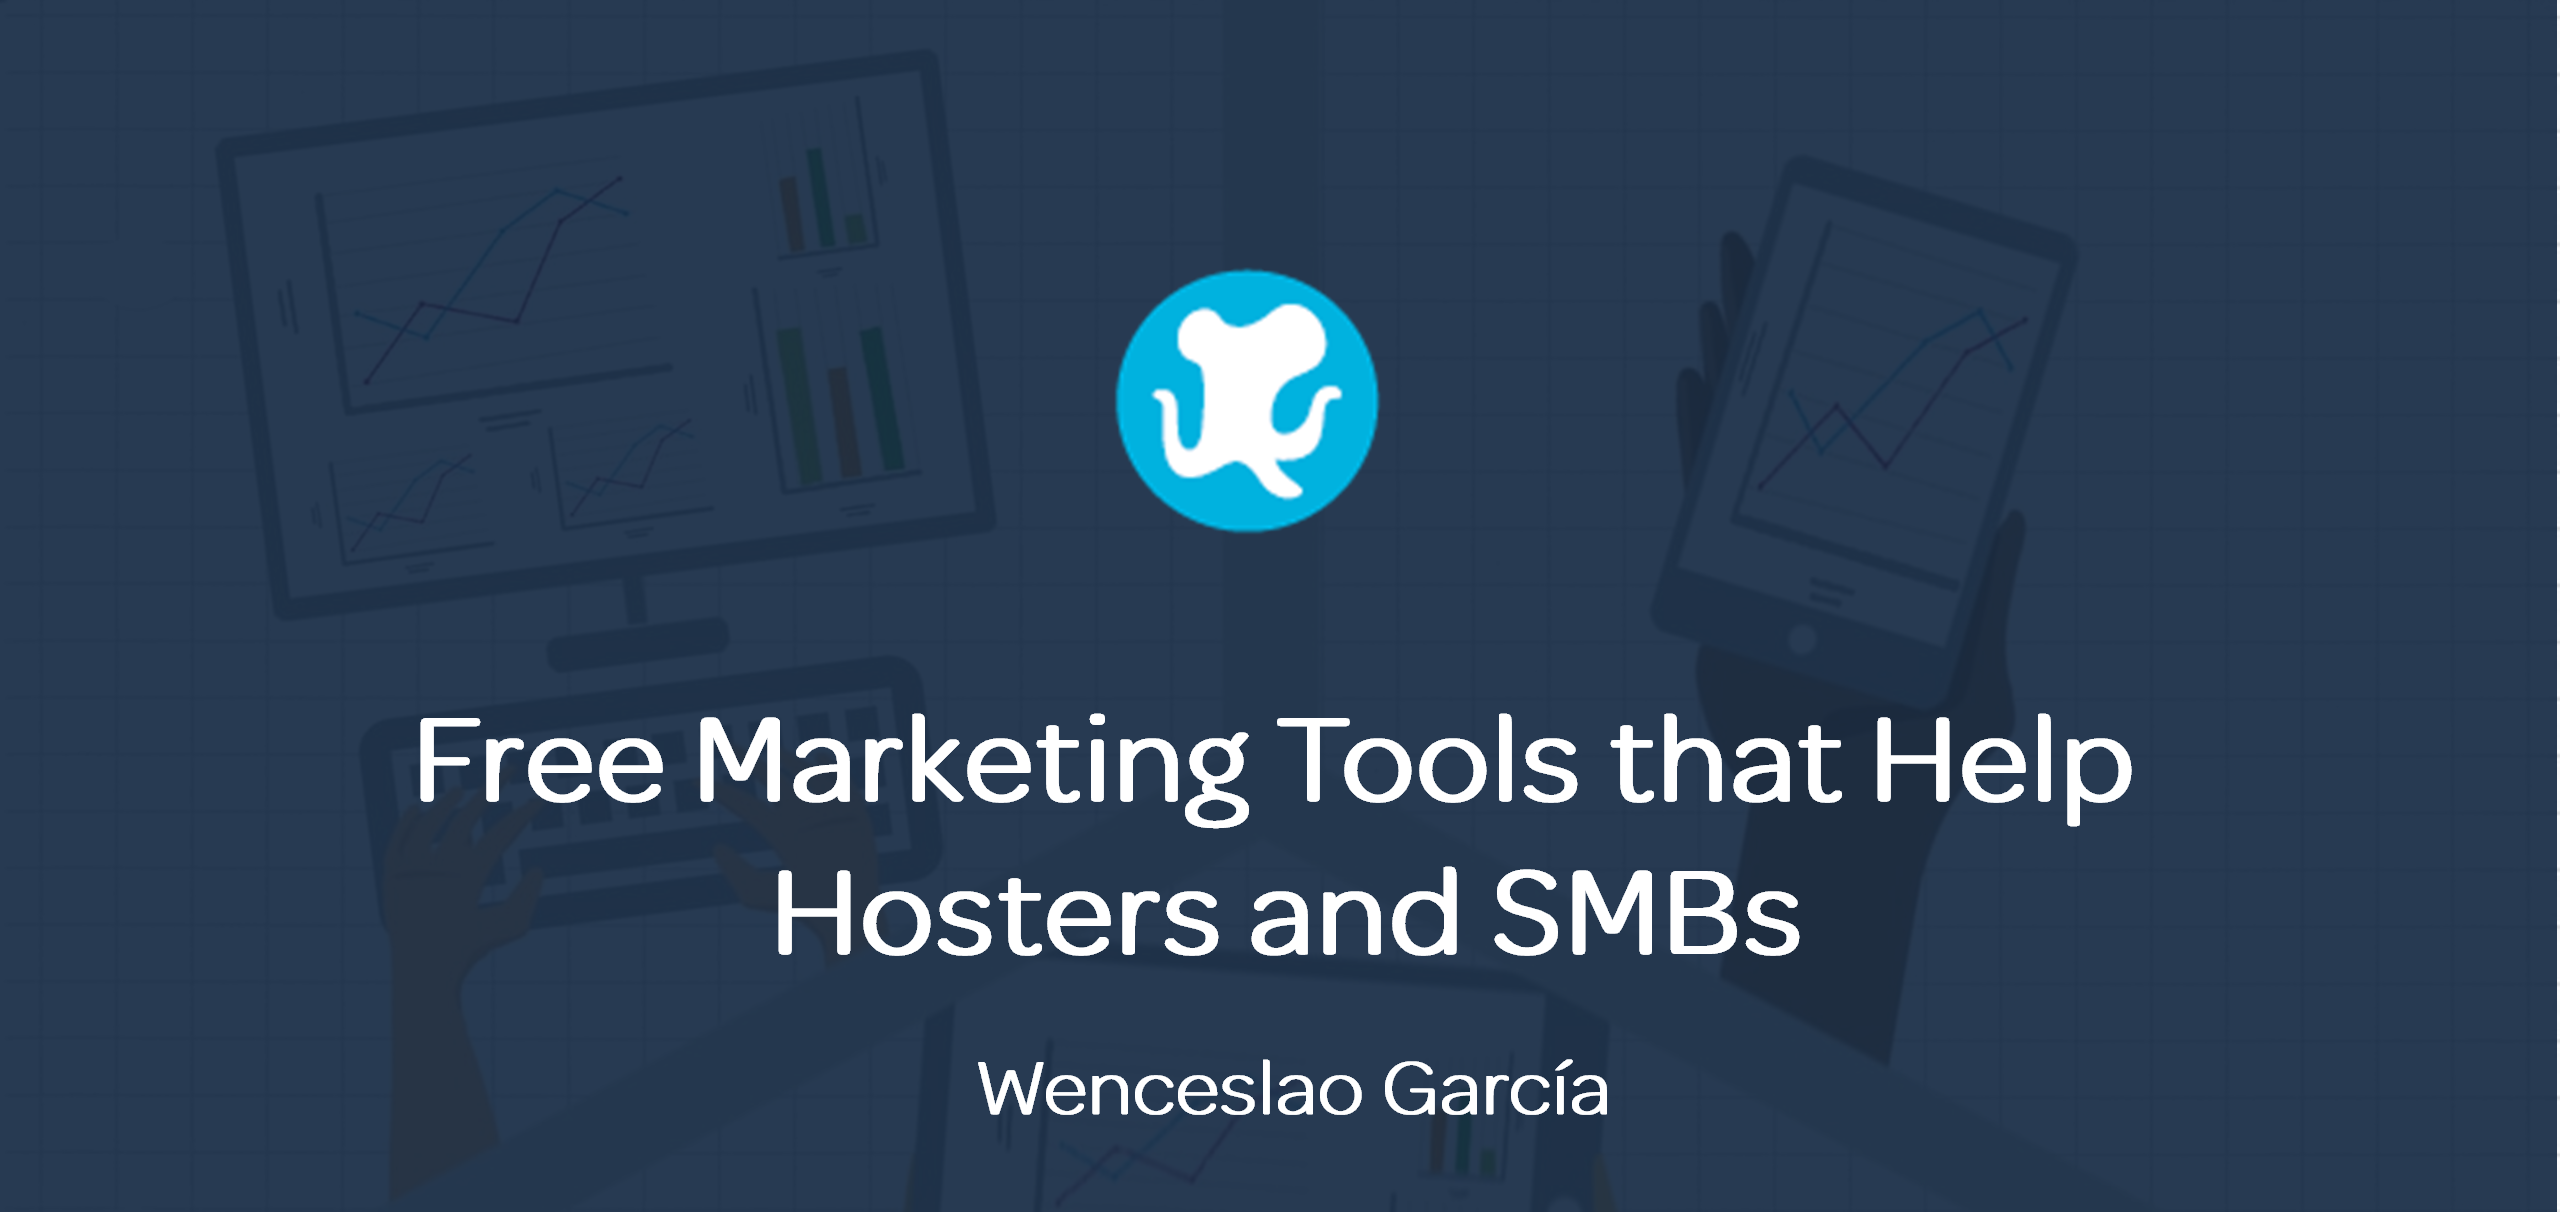 How Free Marketing Tools help Hosting Companies & SMBs grow their Business